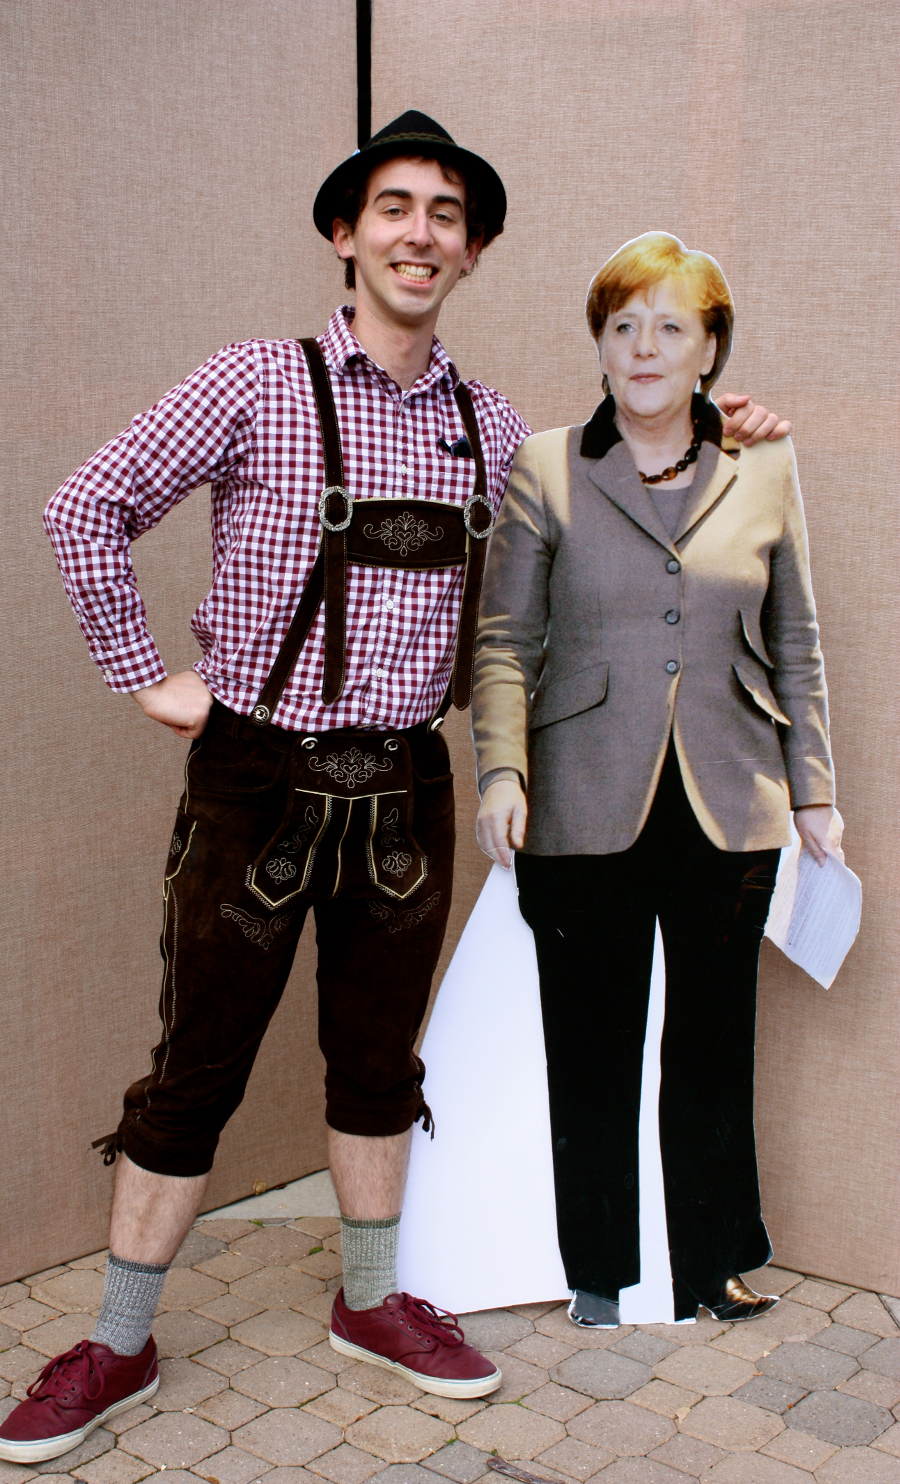 Attending BYU students dressed in traditional German costumes.